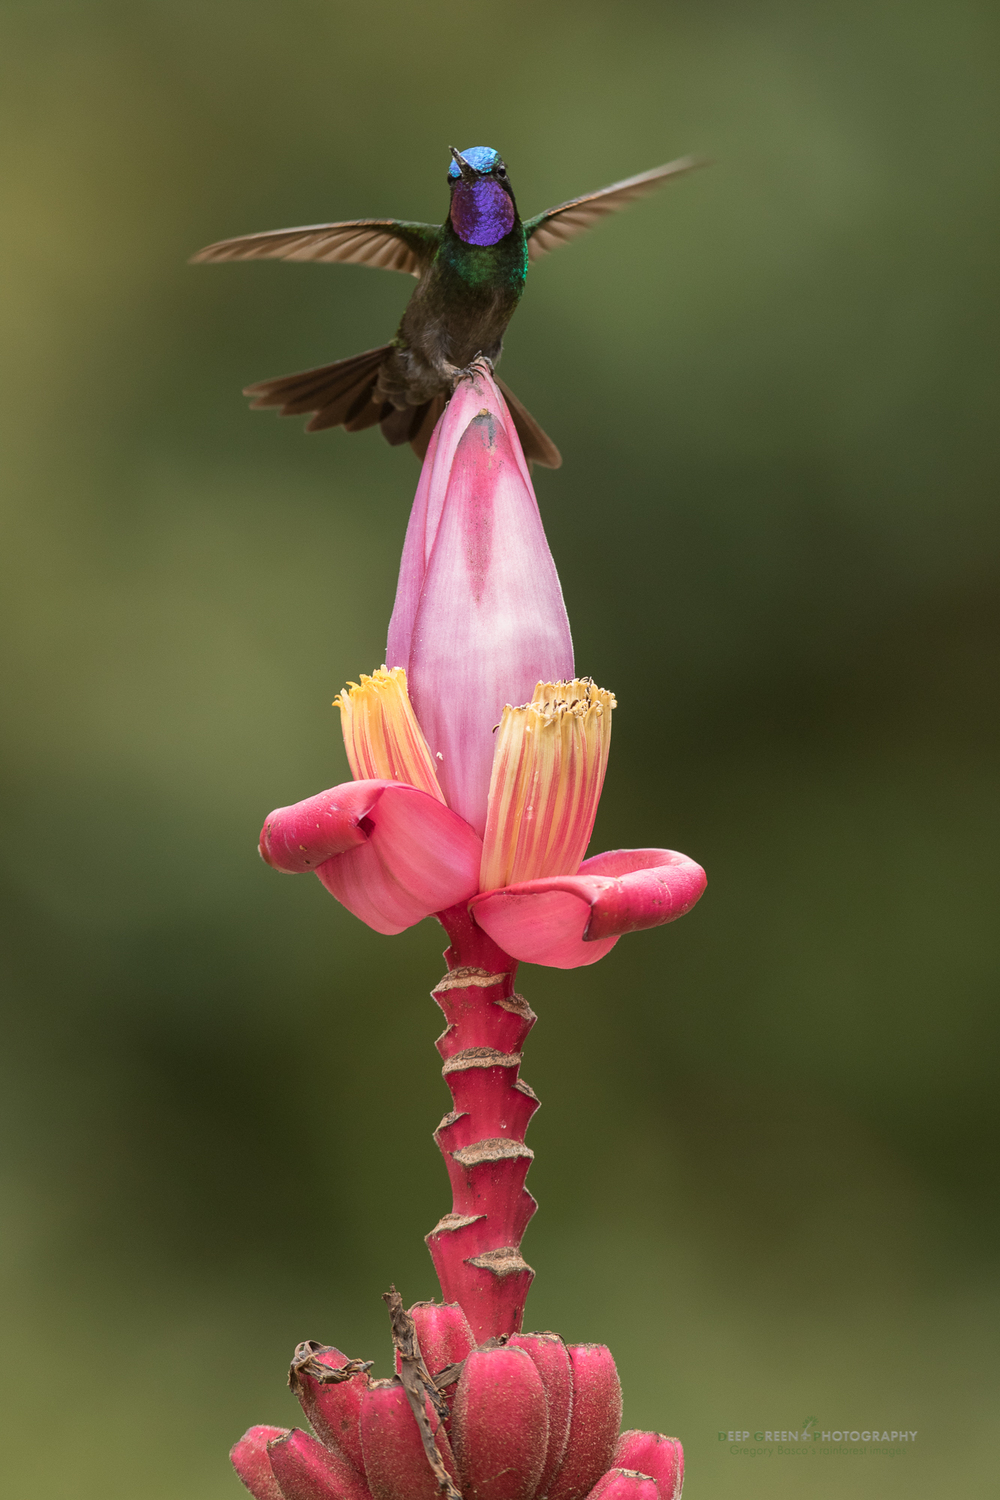 purple-throated mountain gem at ornamental banana flower